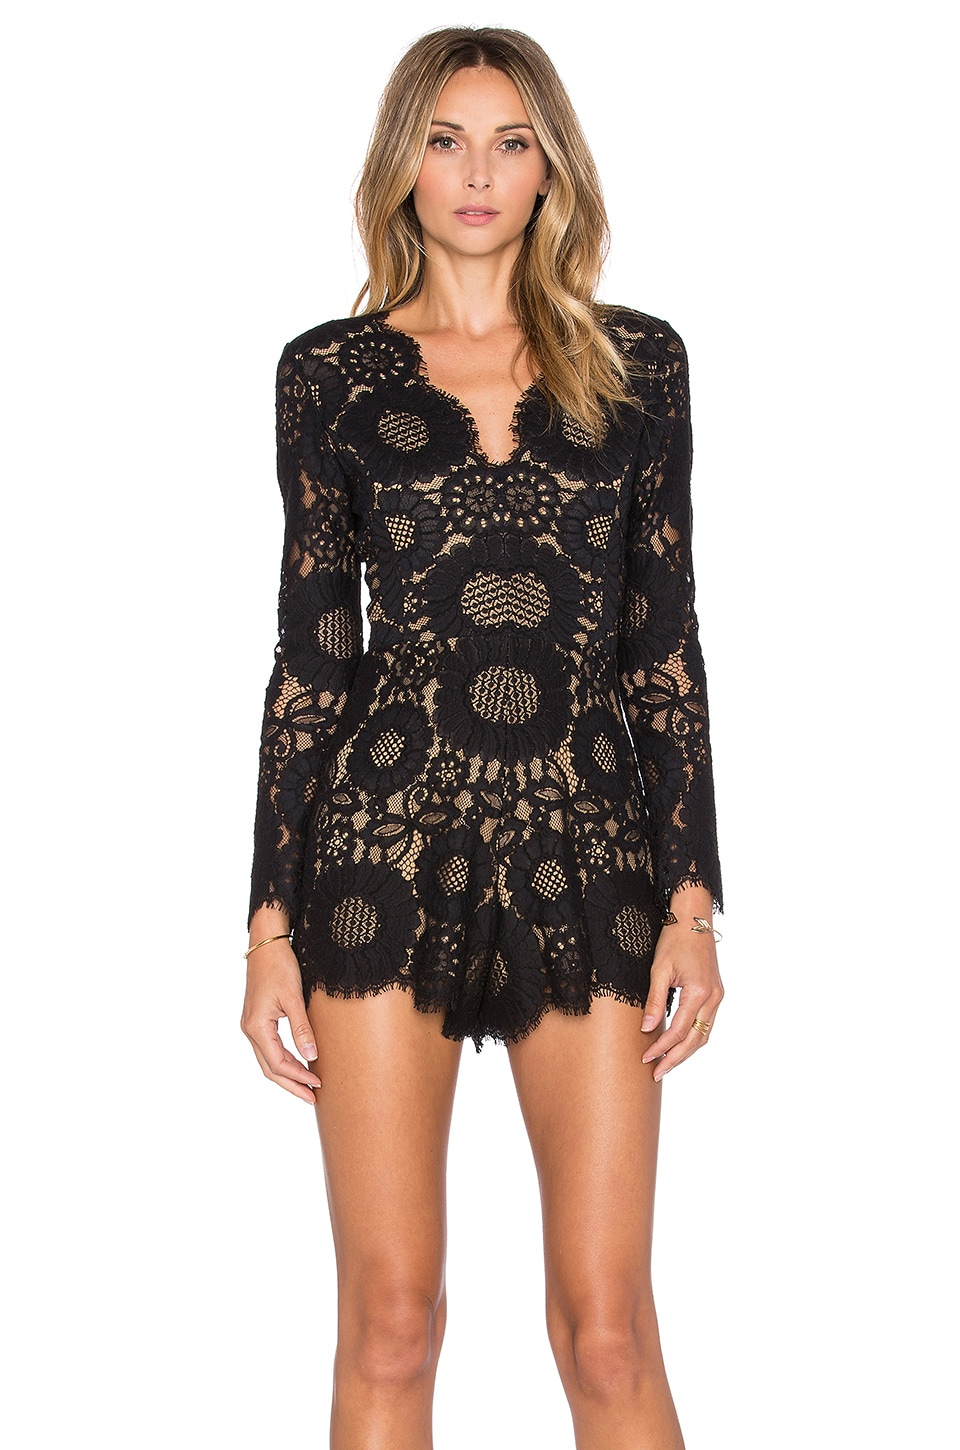 Alexis Ramzes Long Sleeve Scallop Romper in Black Lace